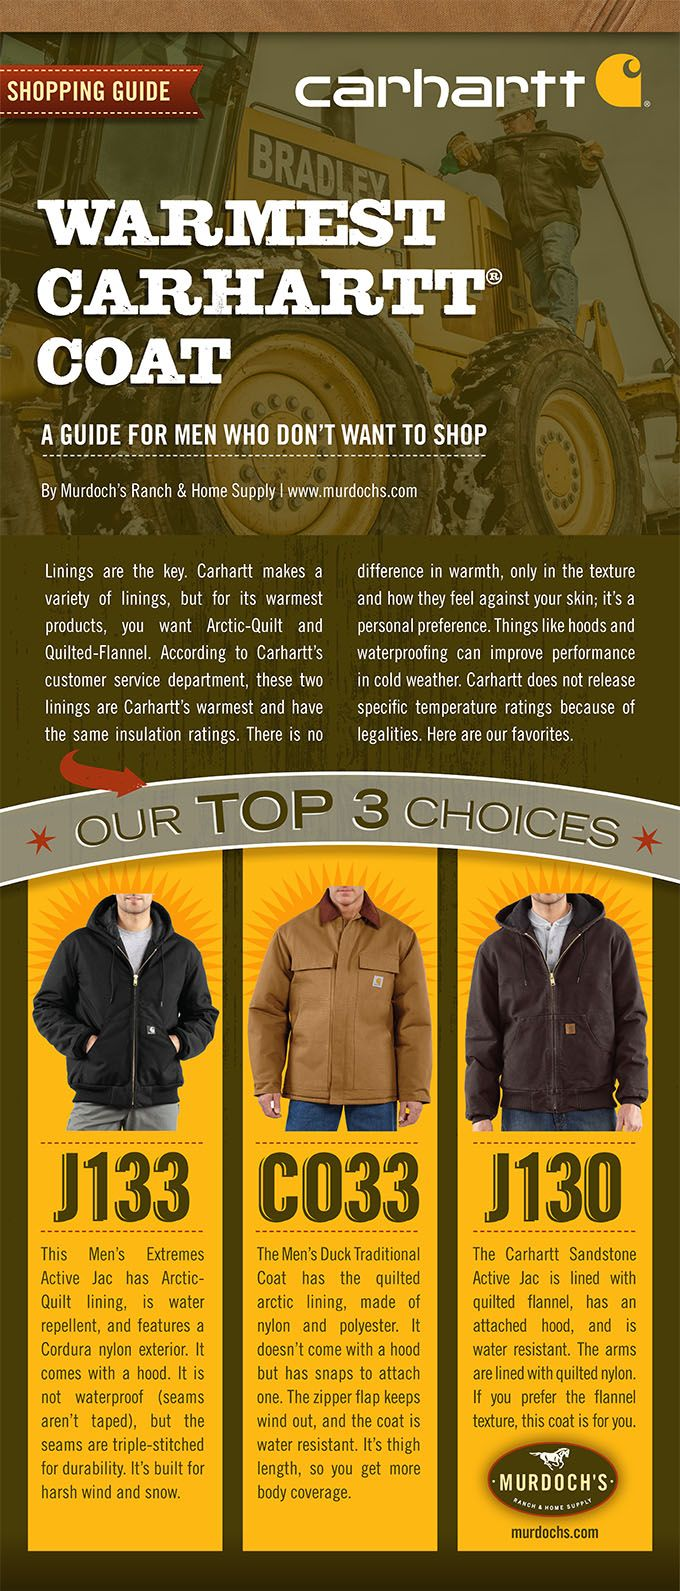 Warmest Carhartt Coat A Guide For Men Who Don T Want To Shop Carhartt Carhartt Jacket Canvas Shirts